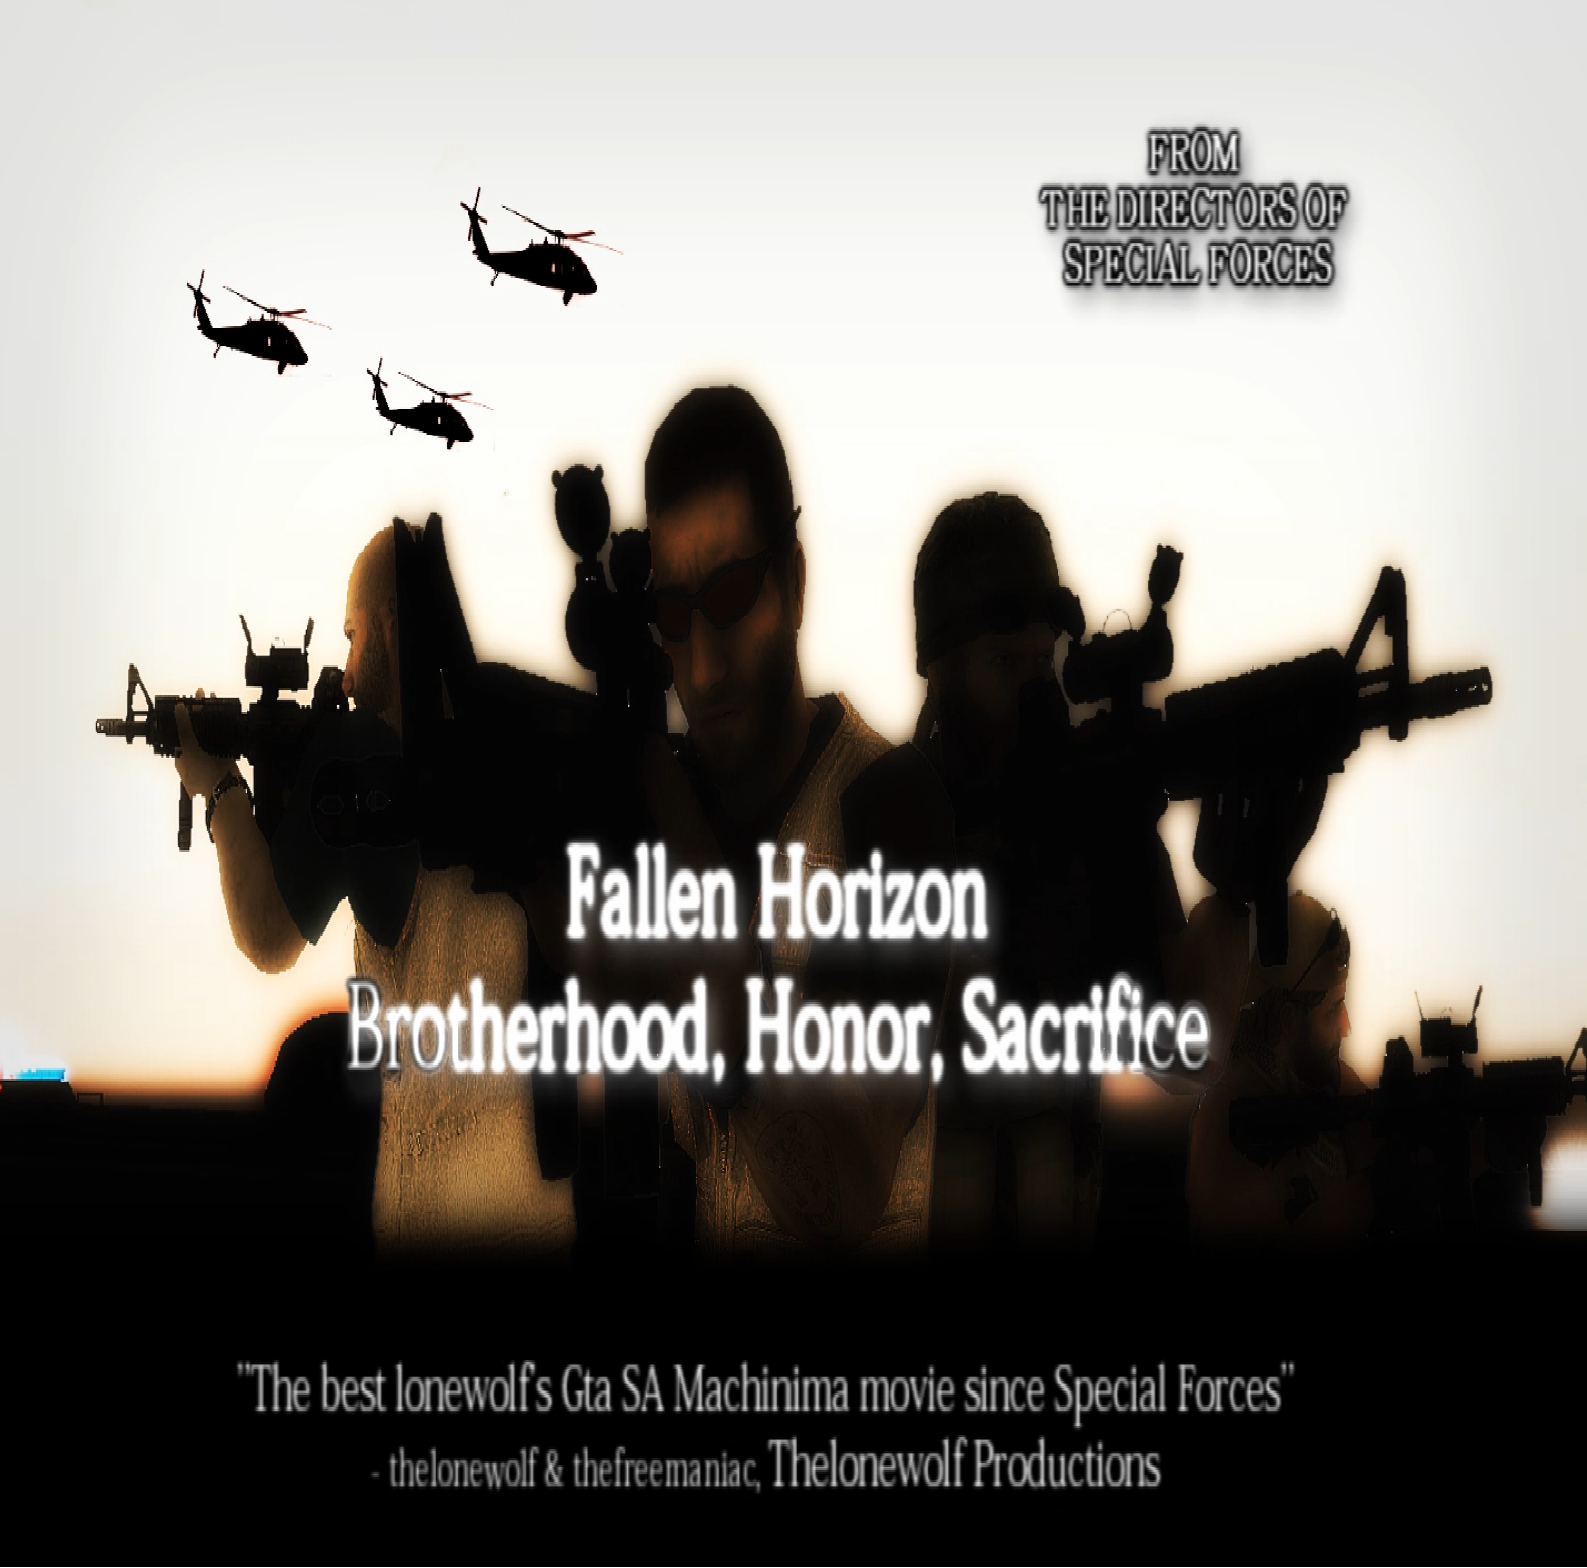 Fallen Horizon: Brotherhood, Honor, Sacrifice